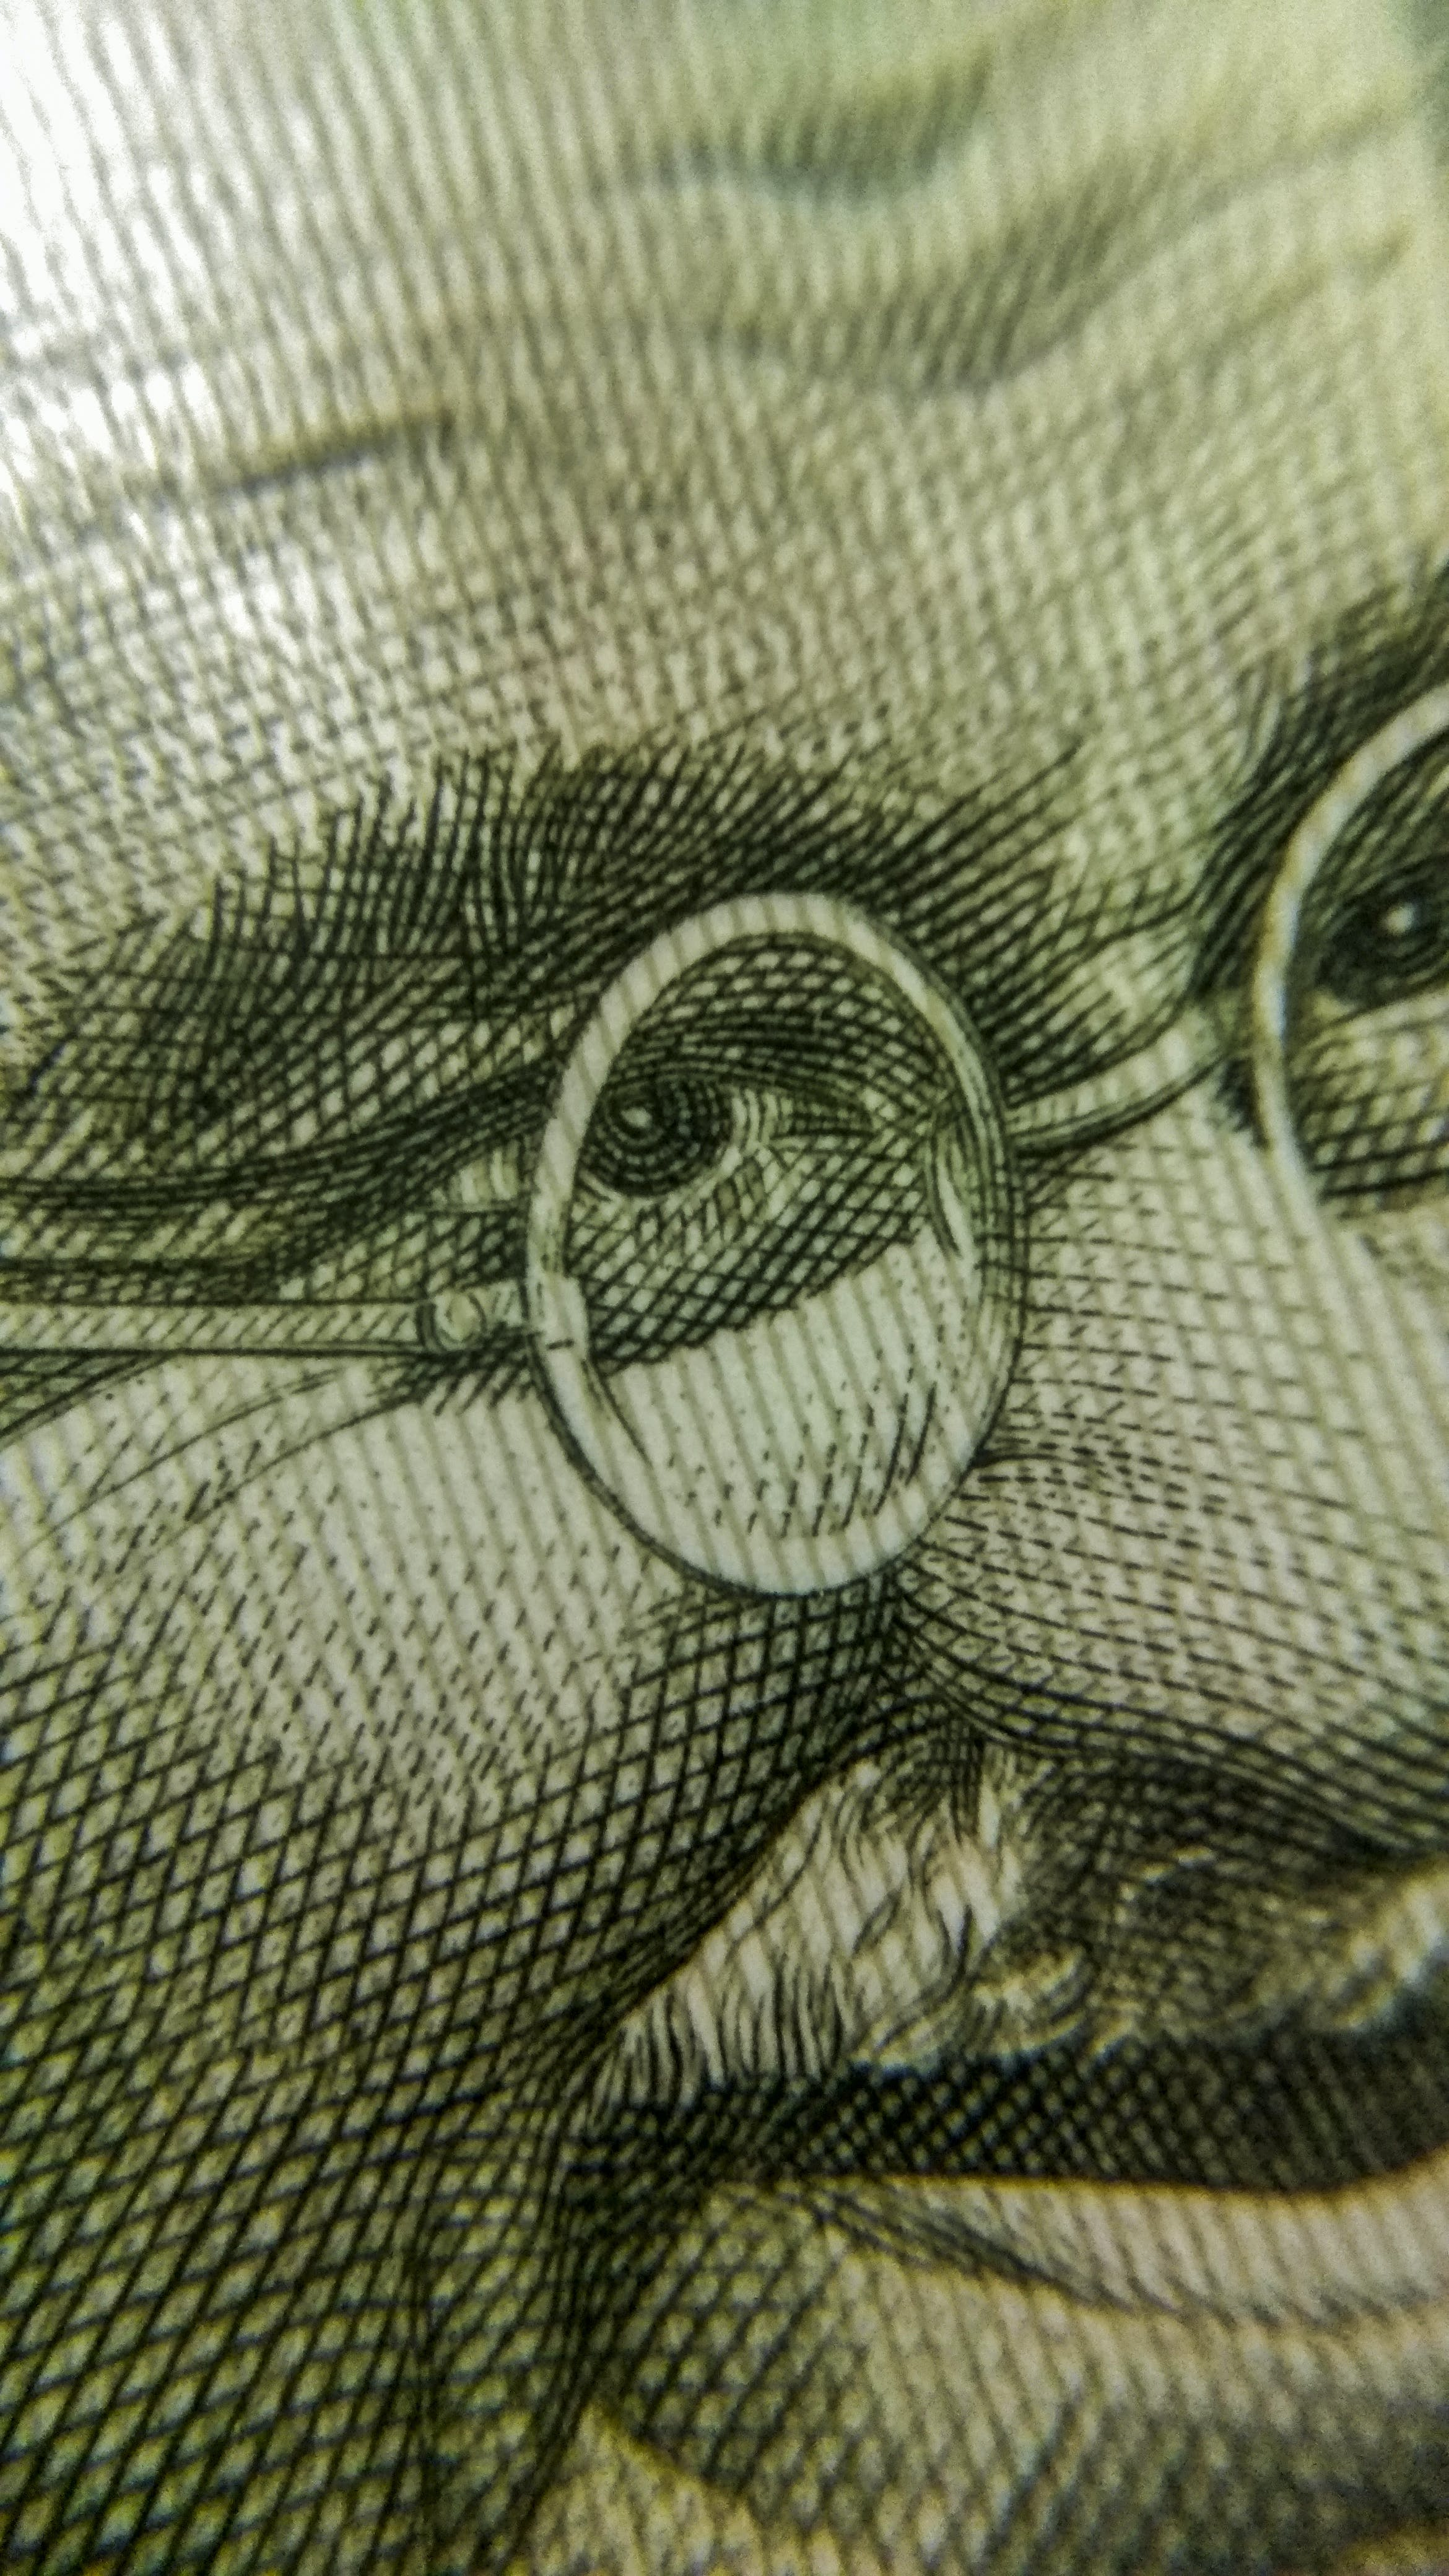 Free stock photo of business, cash, currency, economy